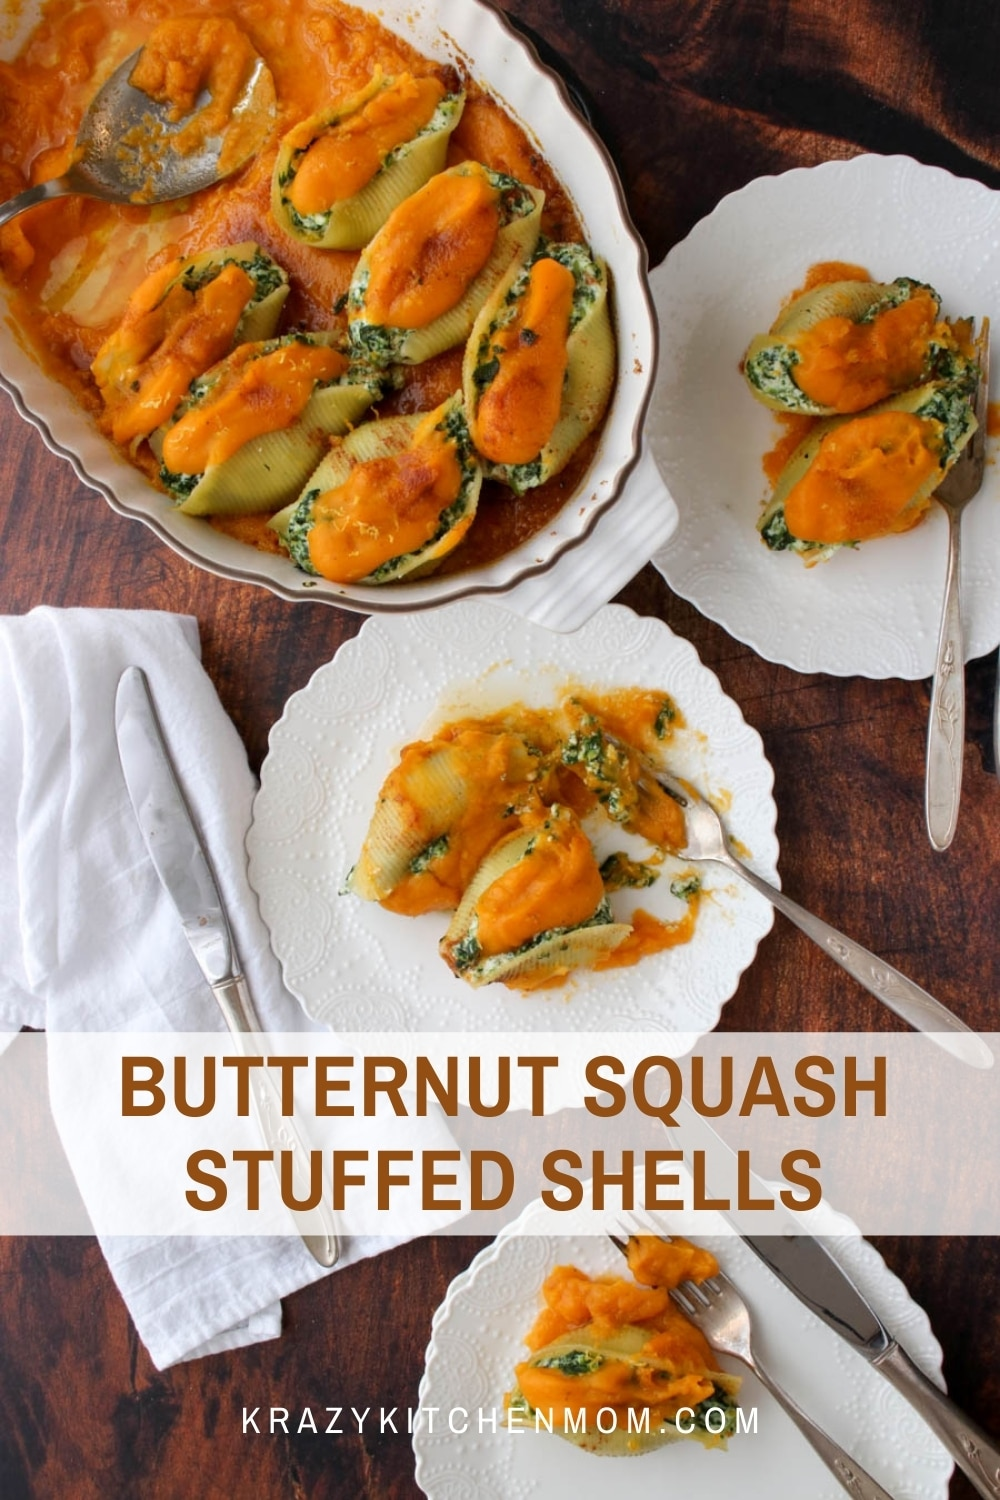 Meatless Mondays just got a whole lot better with my butternut squash stuffed shells recipe. This dish is full of creamy ricotta cheese, spinach, and butternut squash puree. It's perfect for any family dinner and impressive enough for company. via @krazykitchenmom